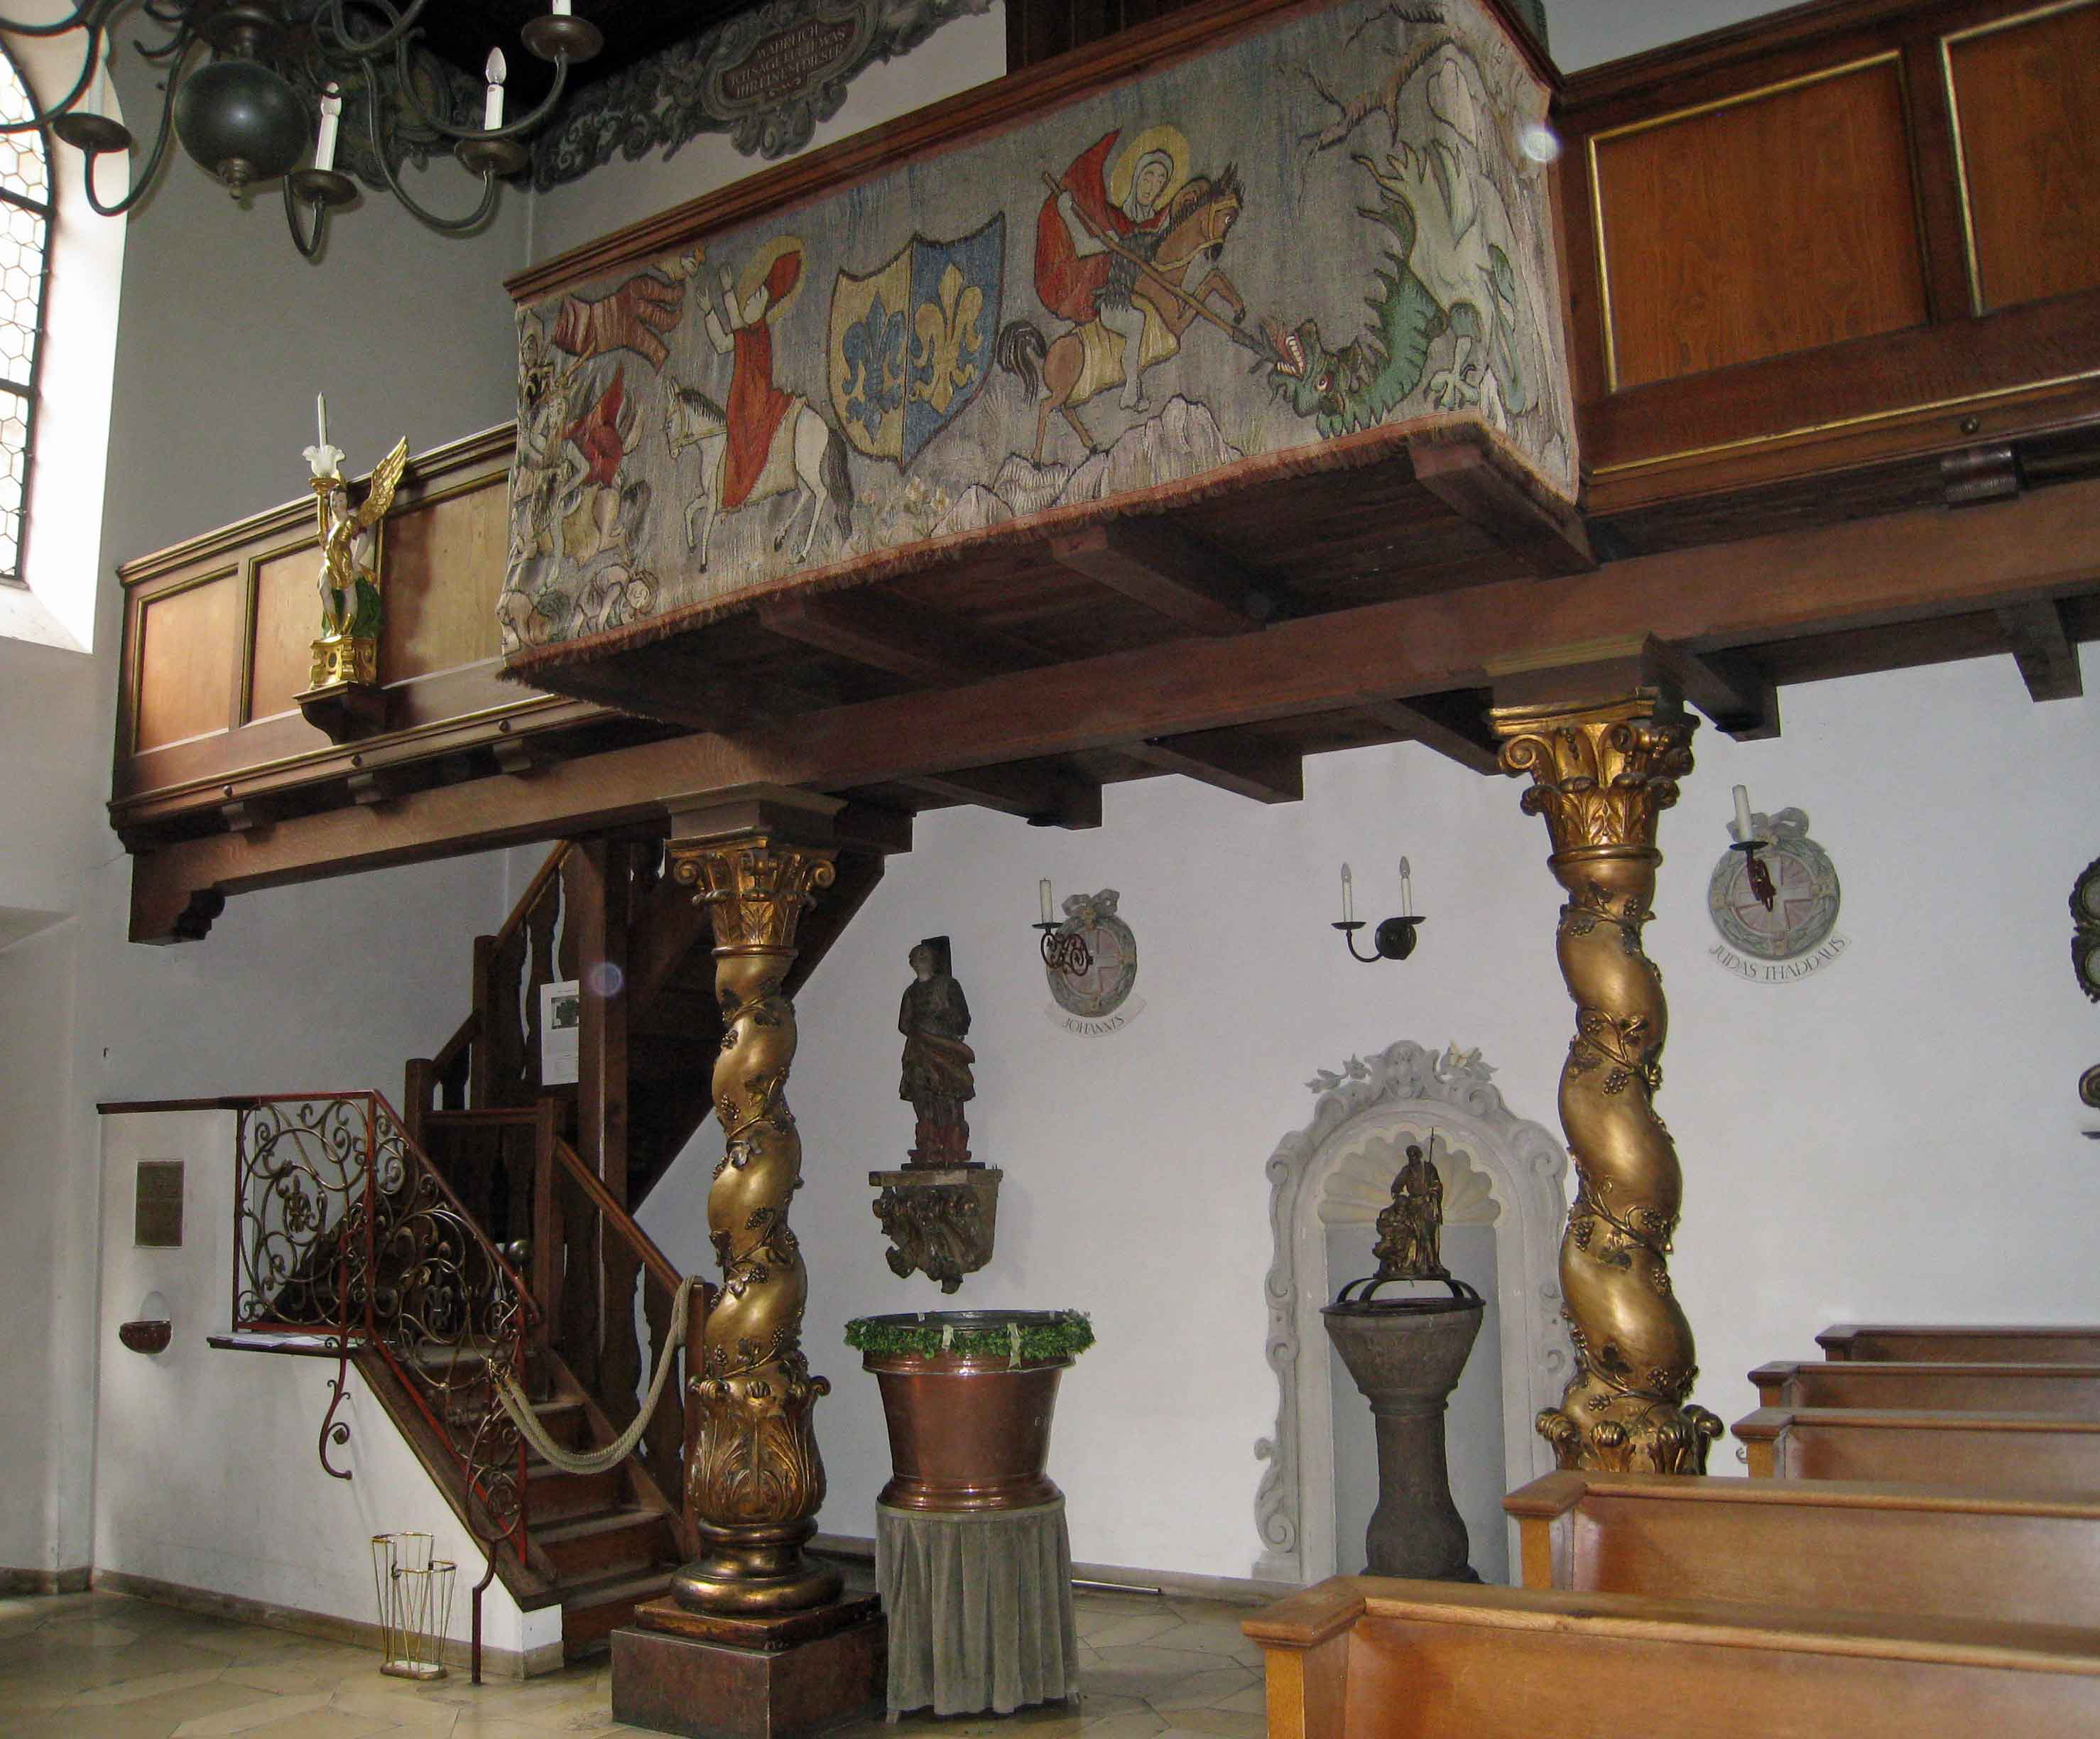 fussen senior singles Top fussen landmarks: see reviews and photos of sights to see in fussen, germany on tripadvisor.